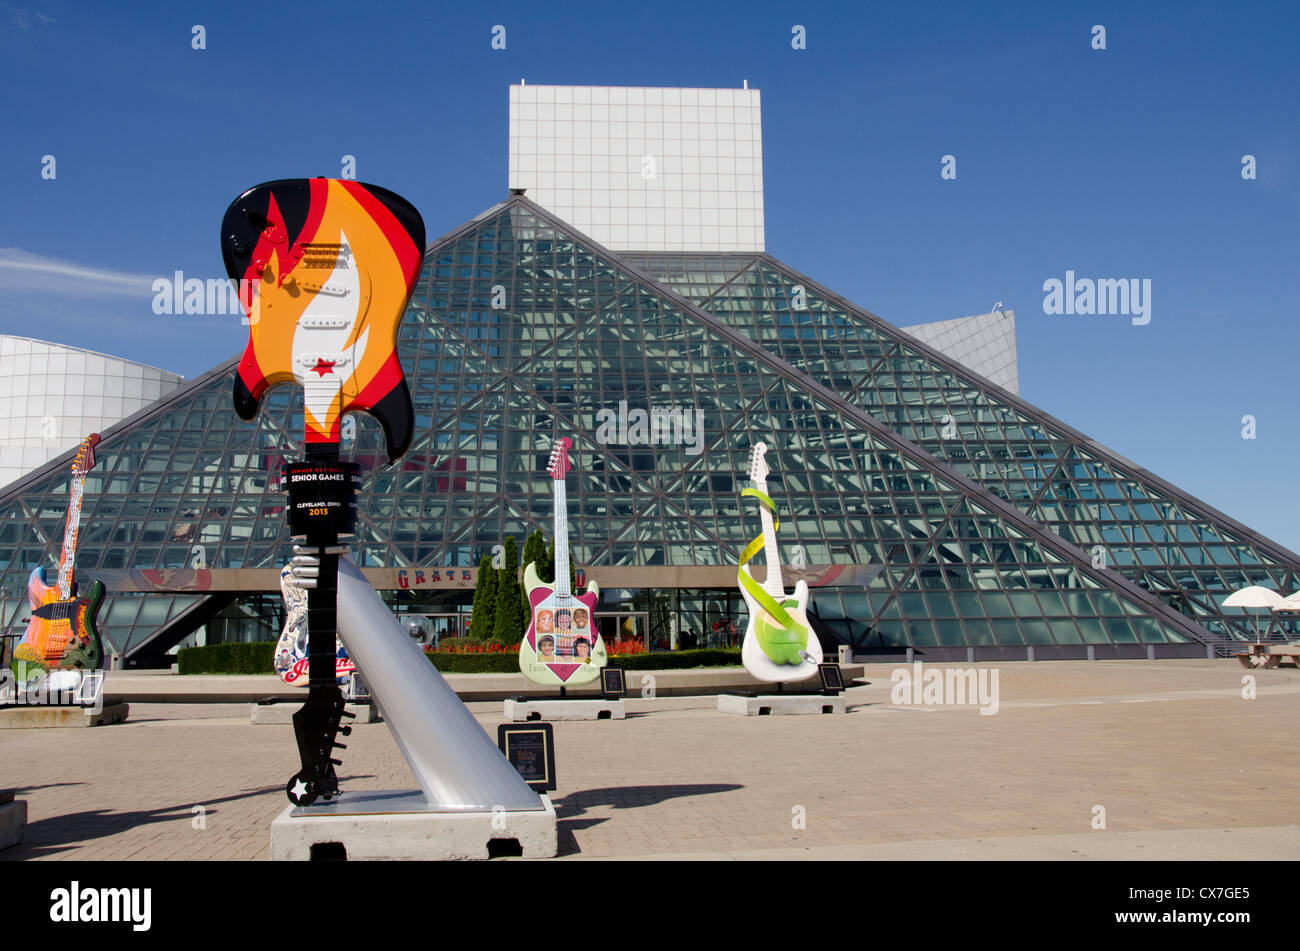 Ohio-Cleveland-Rock-and-Roll-Hall-of-Fam